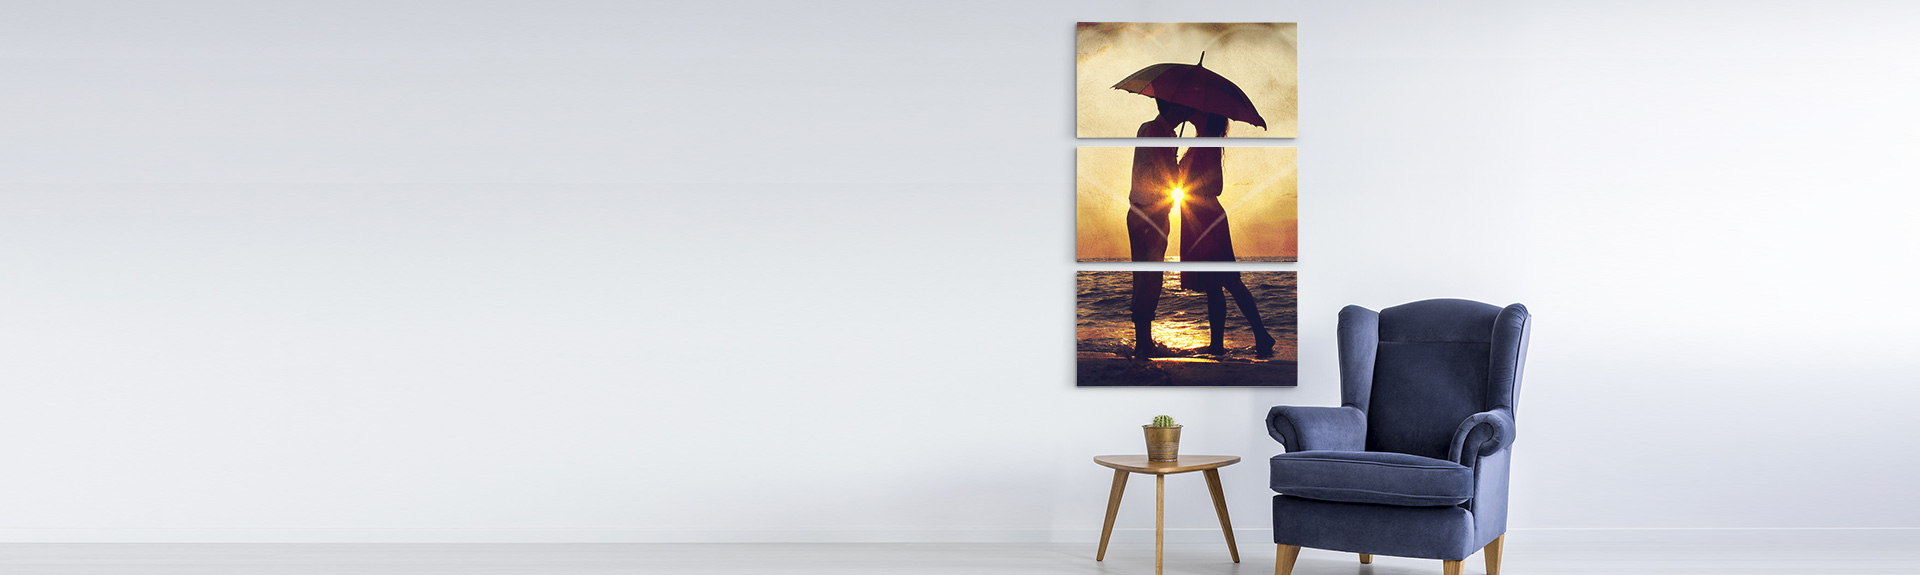 Wake up your walls with these stunning art canvas wall displays